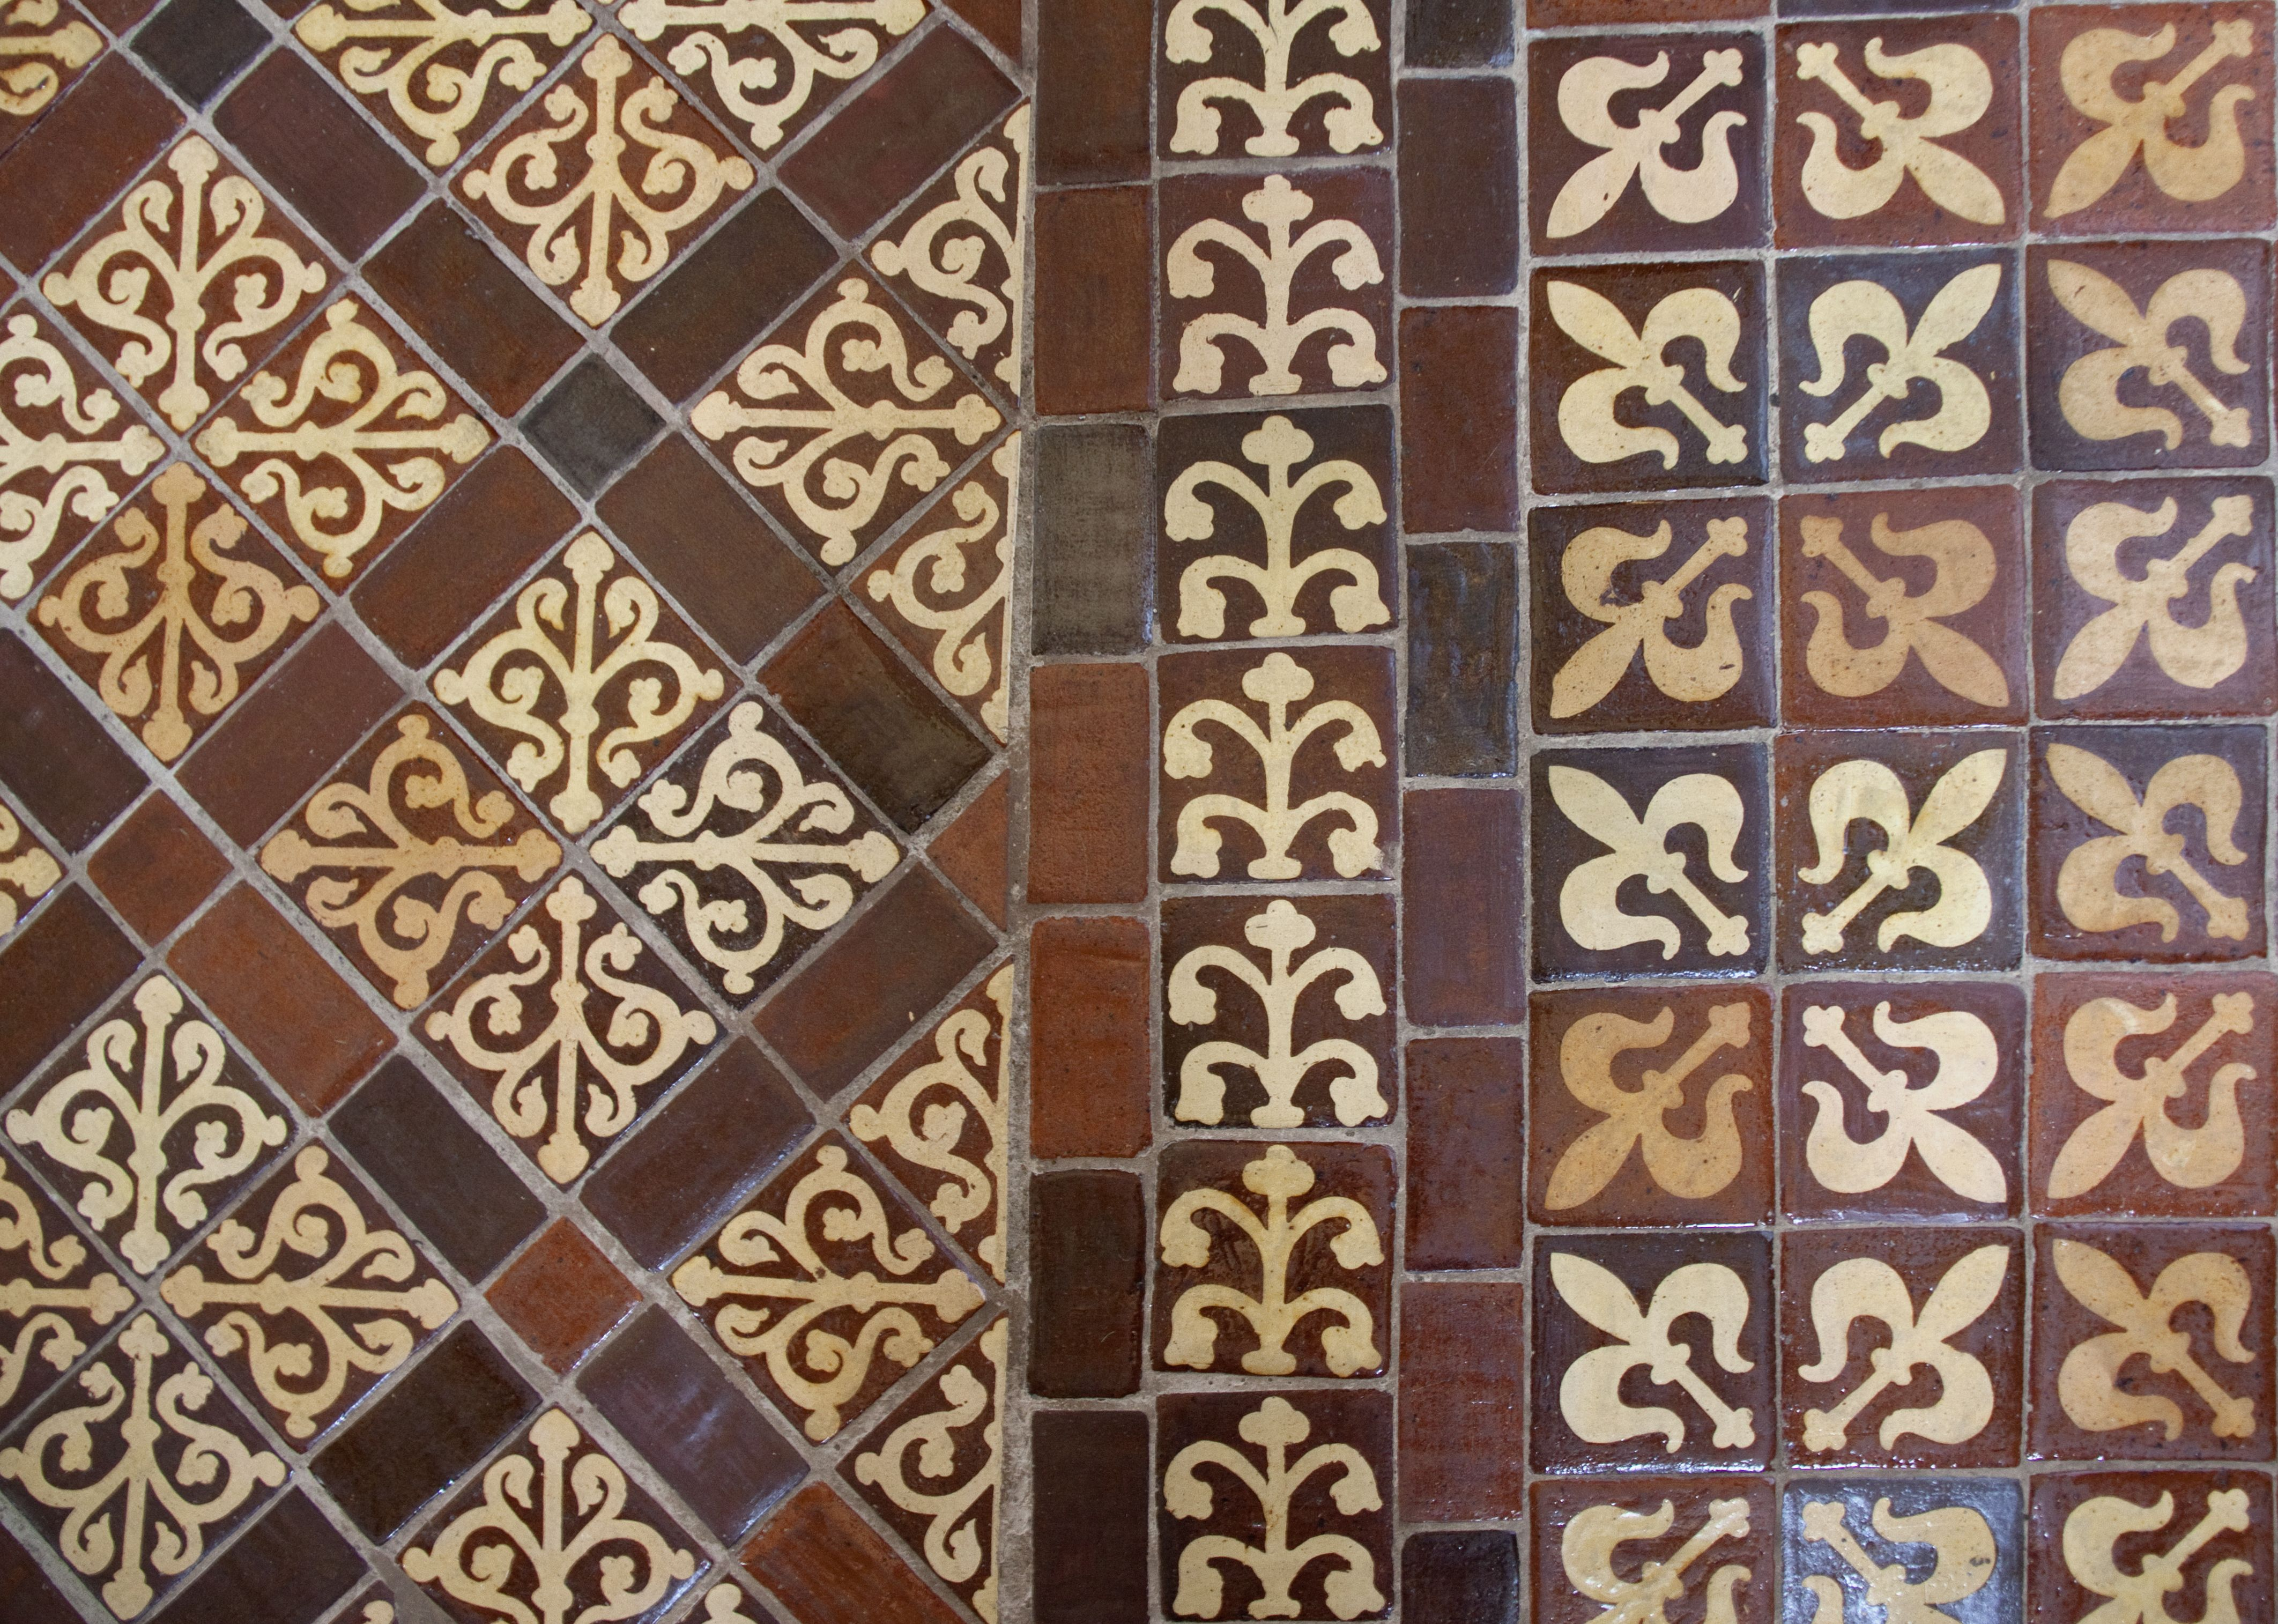 Pin by James Mowry on Medieval Tiles | Pinterest | Medieval